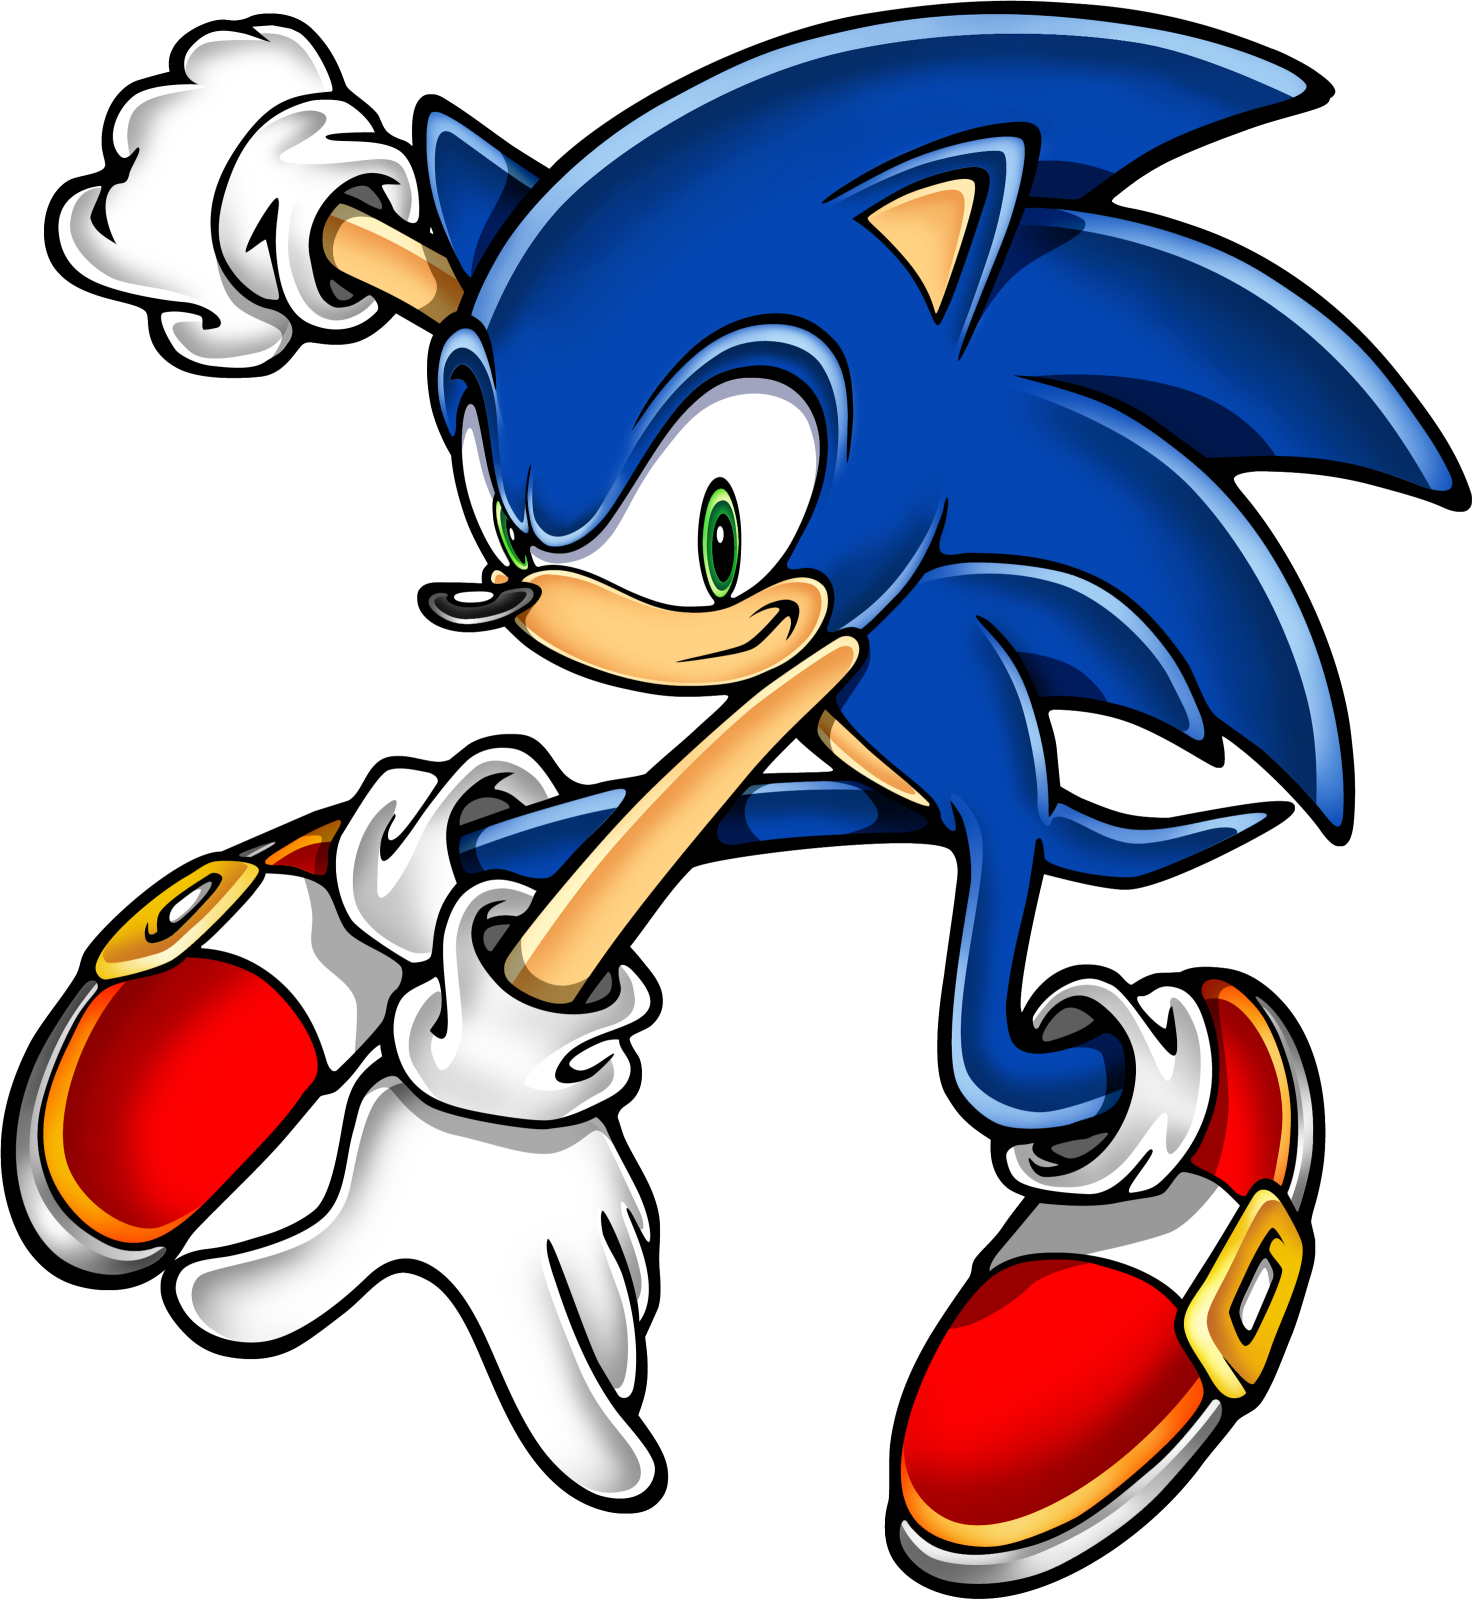 Sonic The Hedgehog PNG - 13012